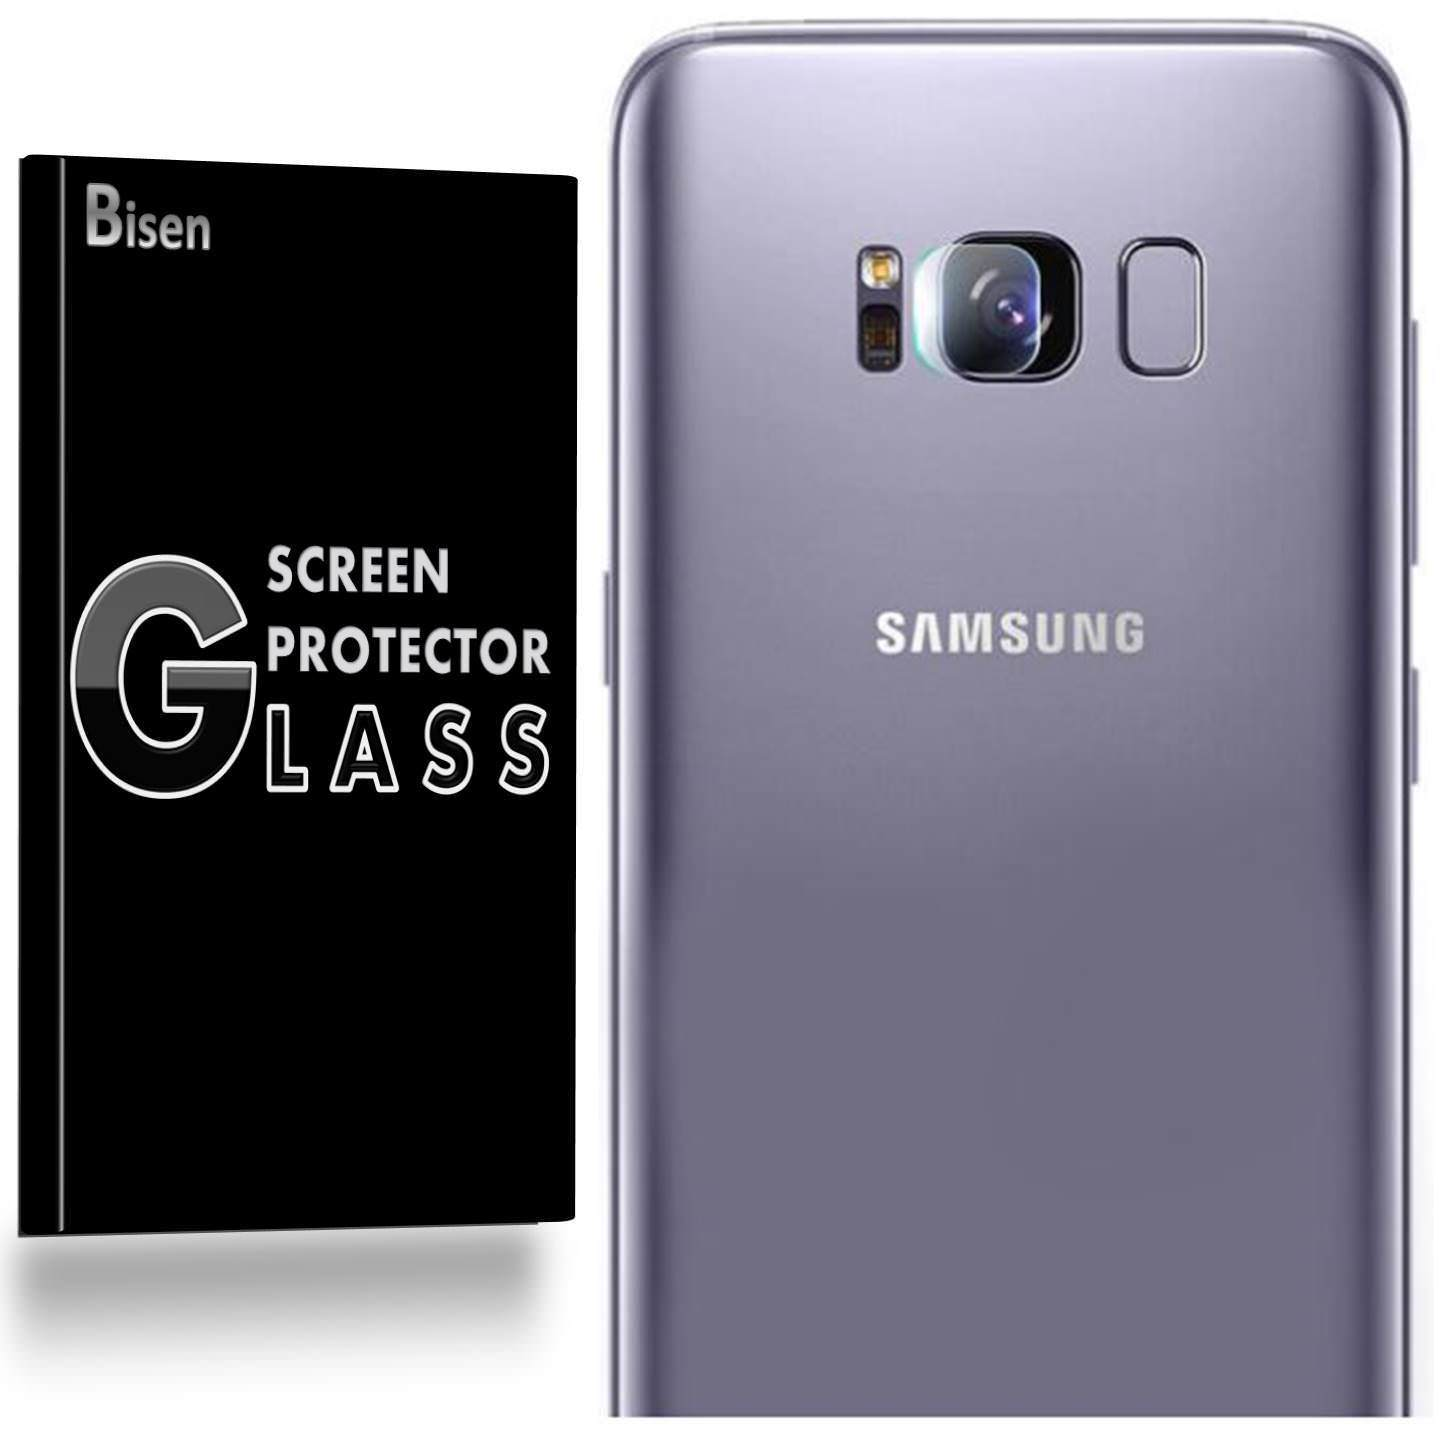 [2-Pack] Back Camera OF Samsung Galaxy S9 BISEN Tempered Glass Screen Protector, Anti-Scratch, Anti-Shock, Shatterproof, Bubble Free